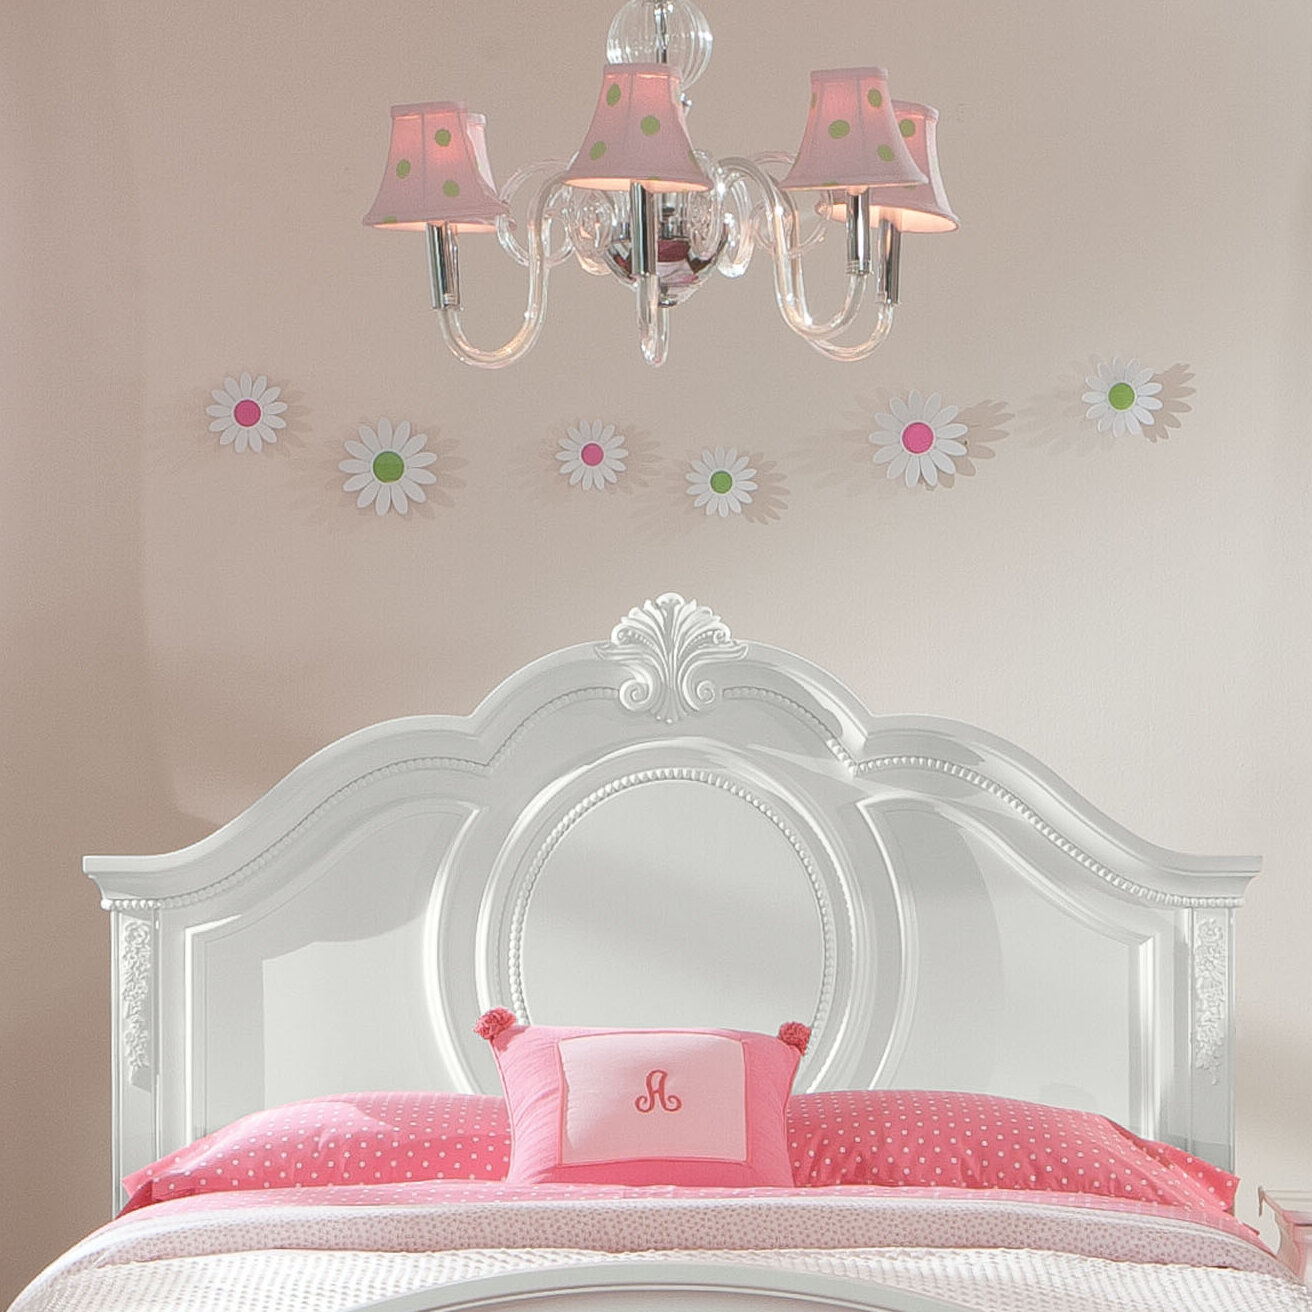 beds bed solid p frame nail panel grande pearl carlisle fashion design wood headboard trim headboards group and with head adjustable upholstered king